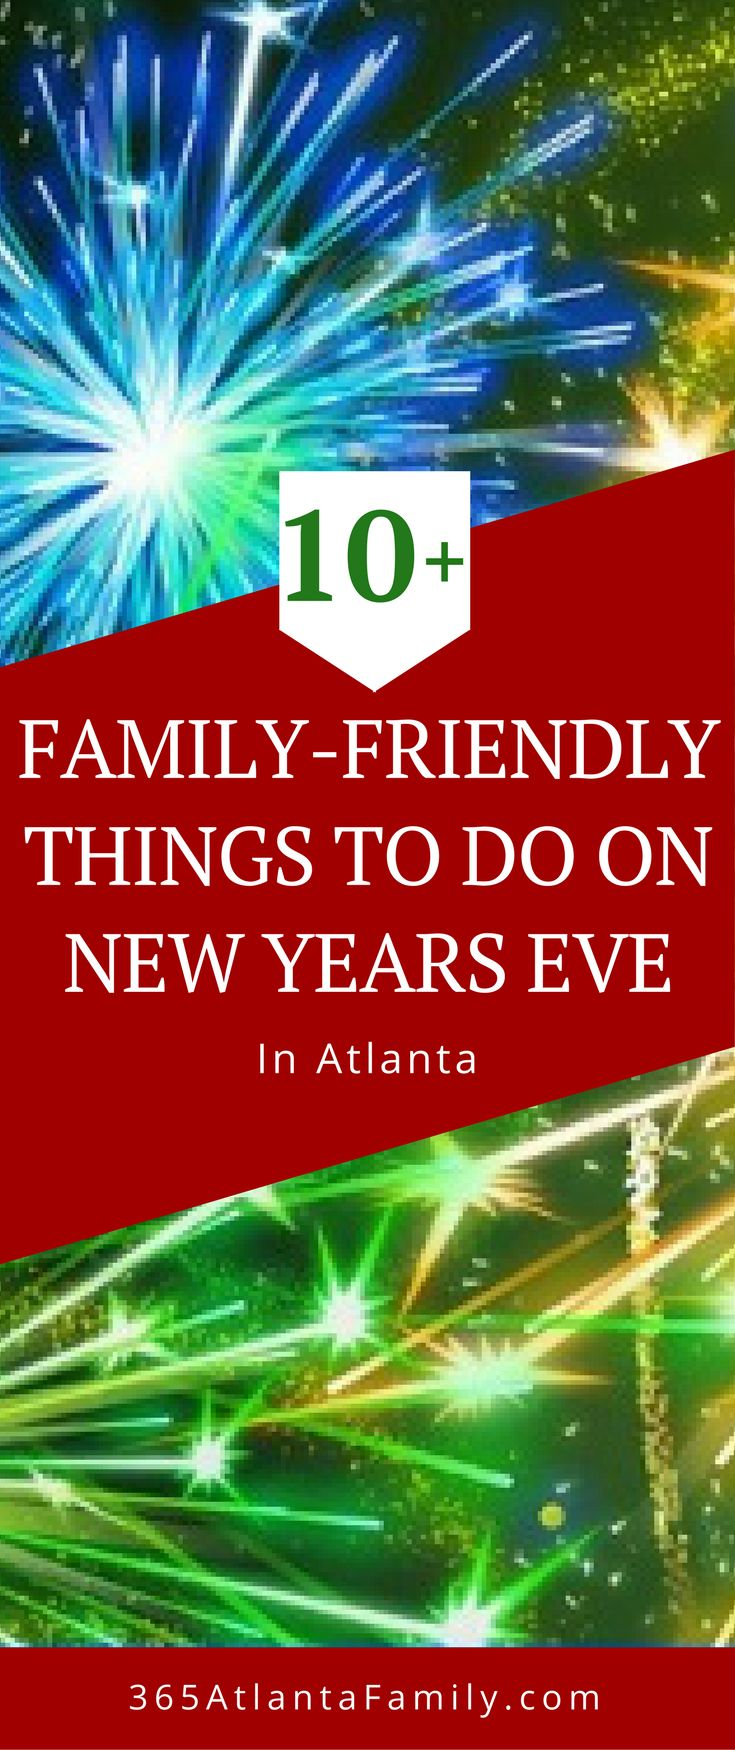 You'll love these ideas for things to do on New Years Eve in Atlanta. The whole family will love these activities. They are great for kids and even for teenagers! The experience you'll give them will be like giving them another Christmas gift. The fun of the holidays aren't over until this big celebration. Bring in the New Year the best way! #Christmas #holidays #Atlanta #NewYearsEve #NewYears #family #kids #events #activities